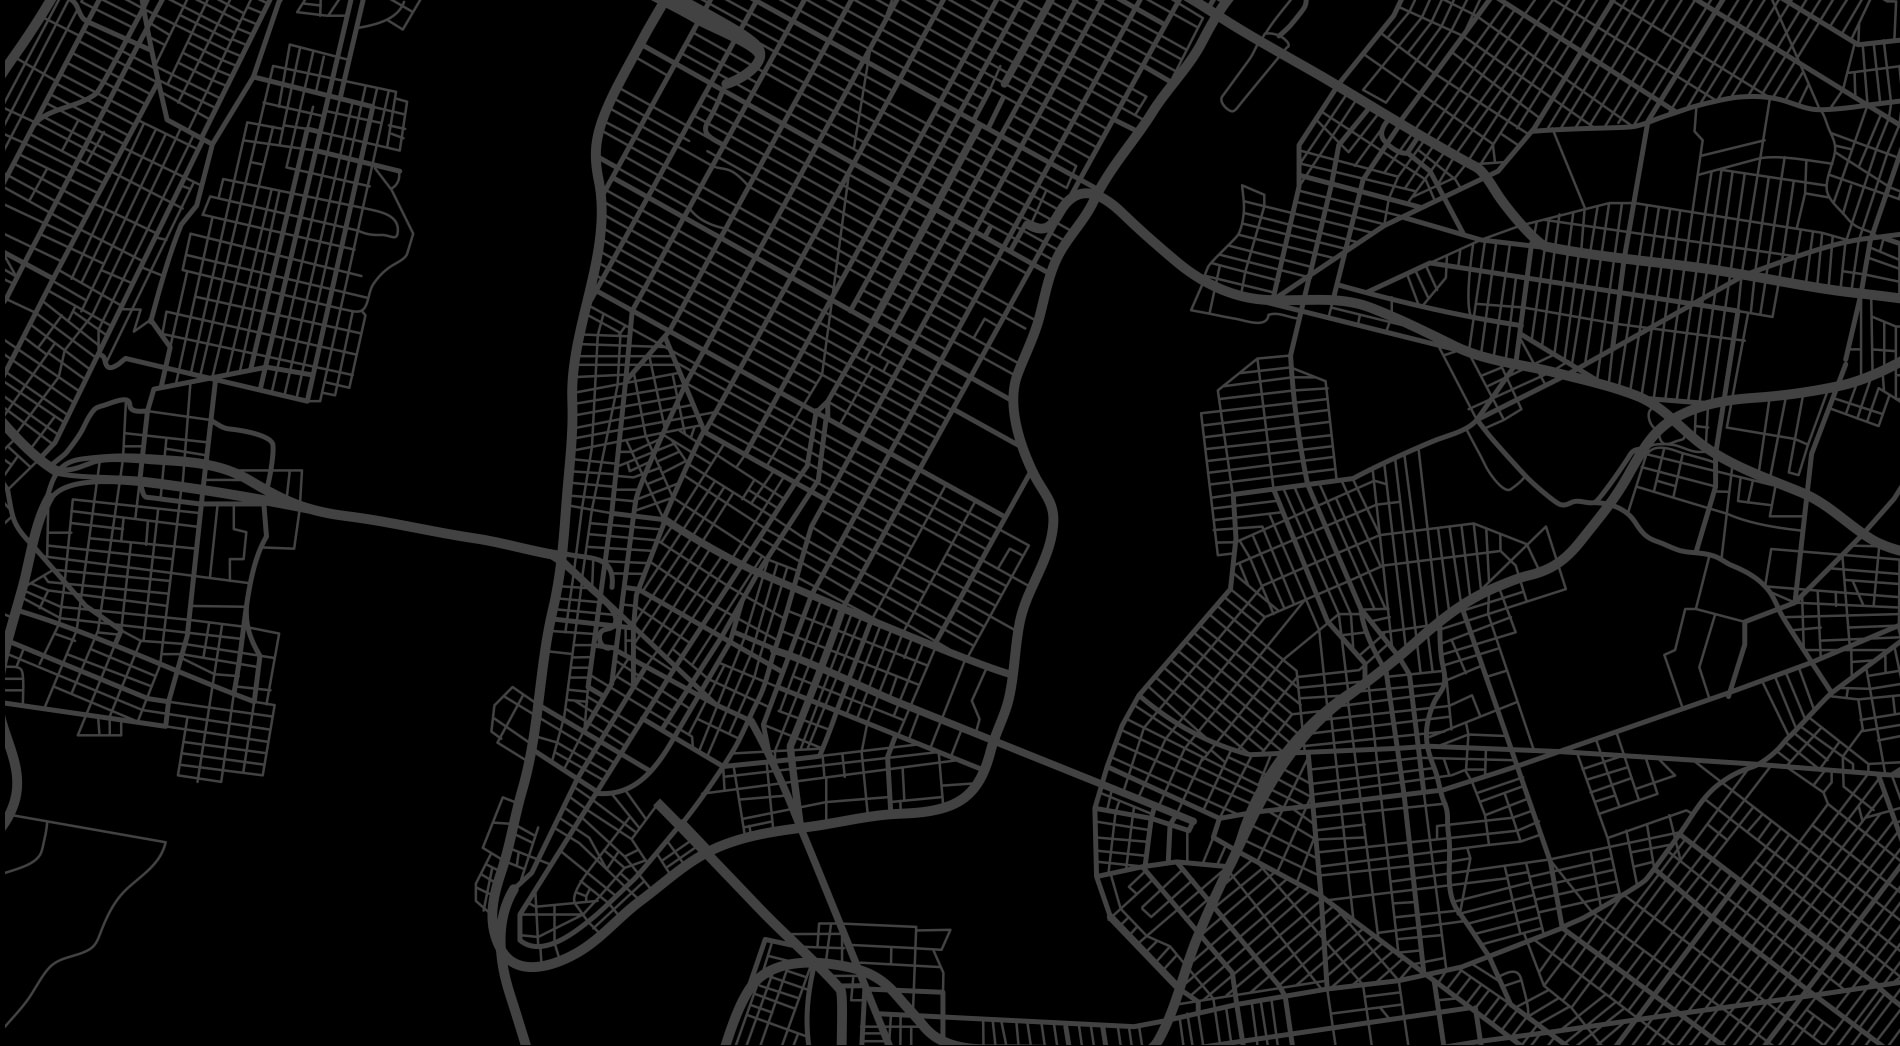 overlay image of a map of new york